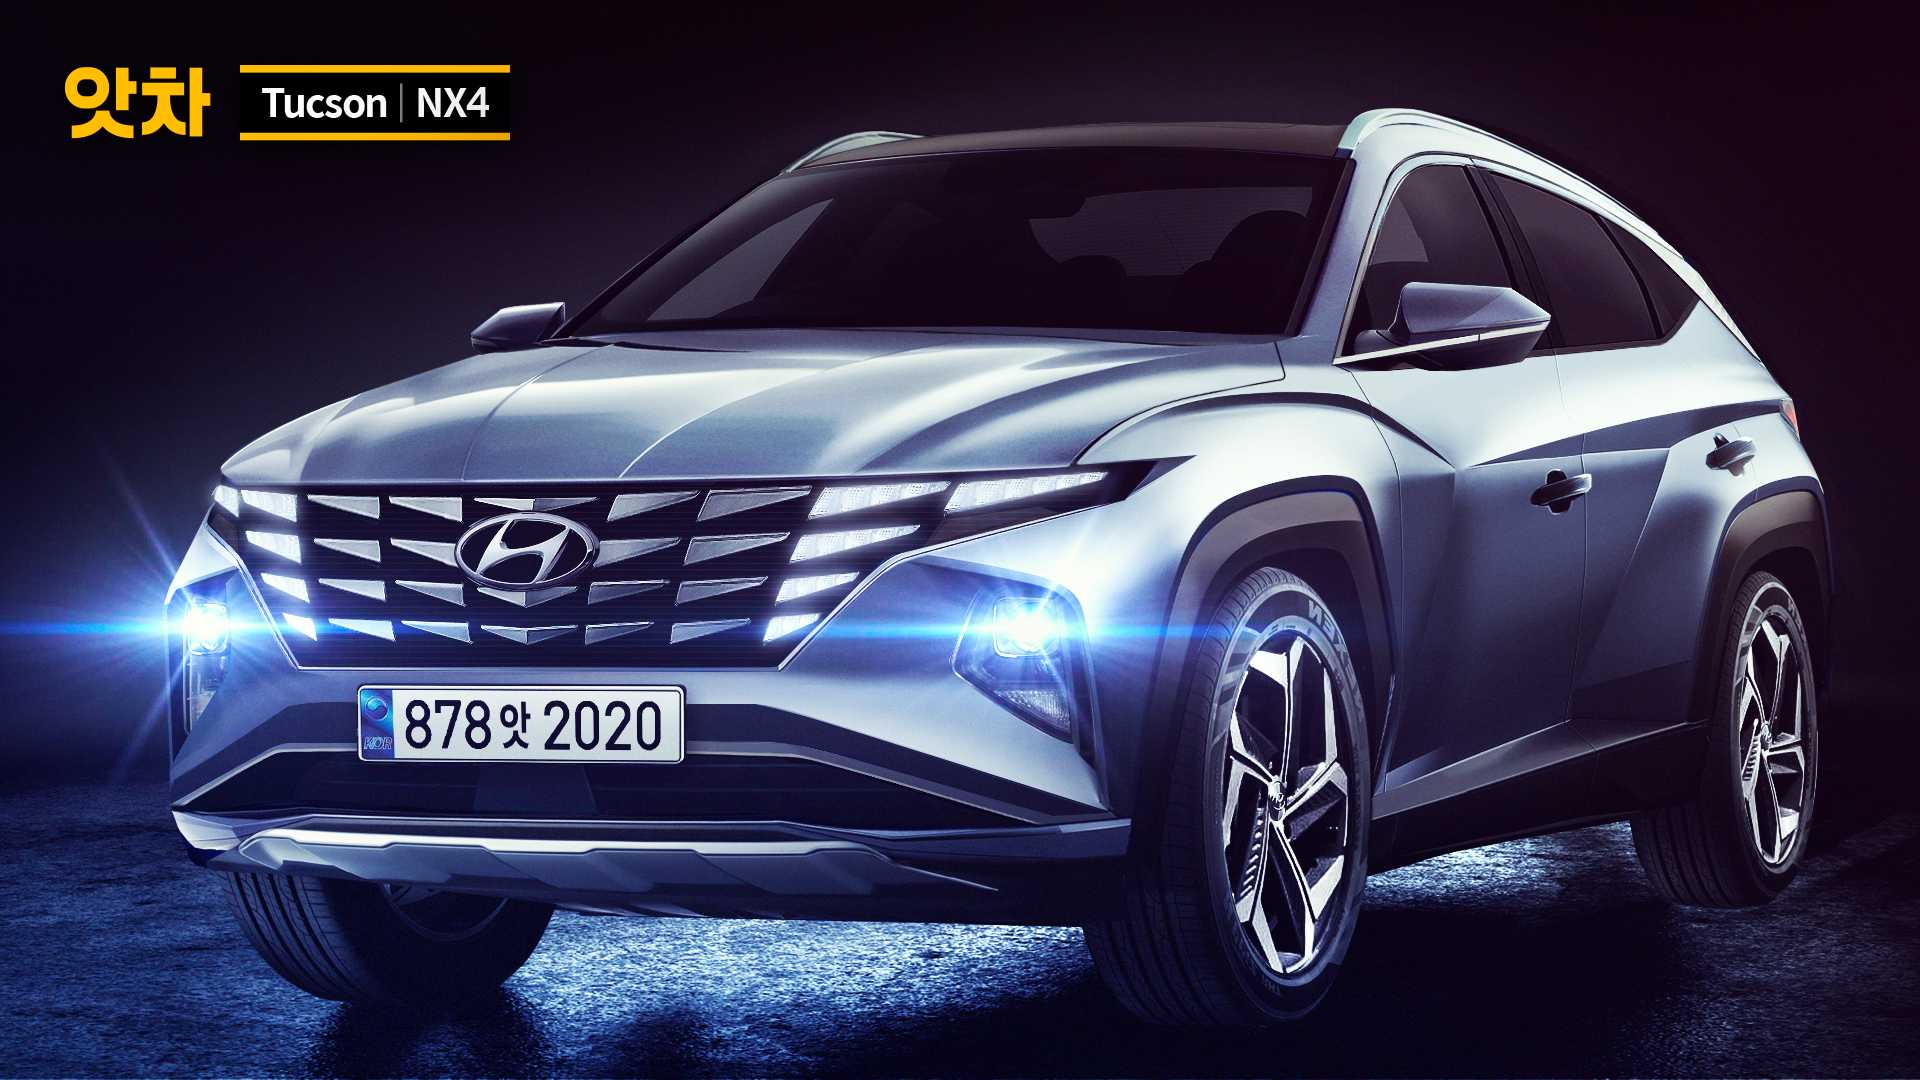 2021 hyundai tucson renderings could it be this bold